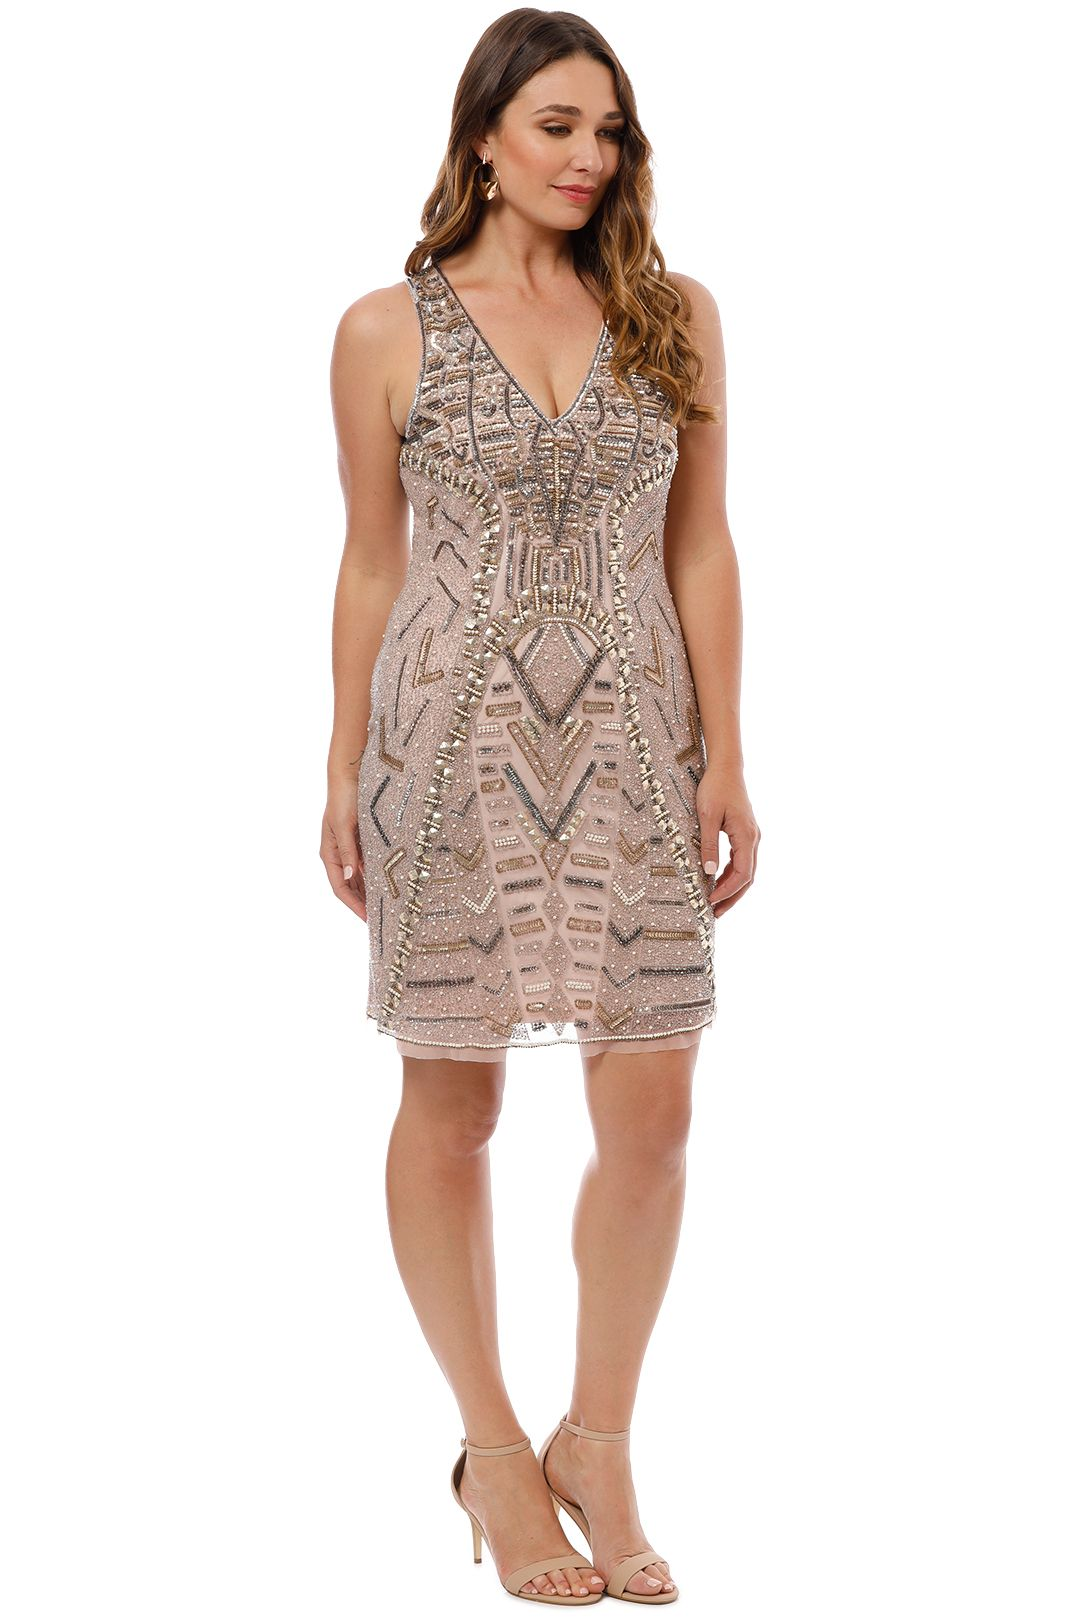 Grace and Blaze - All That Shines Dress - Blush - Side